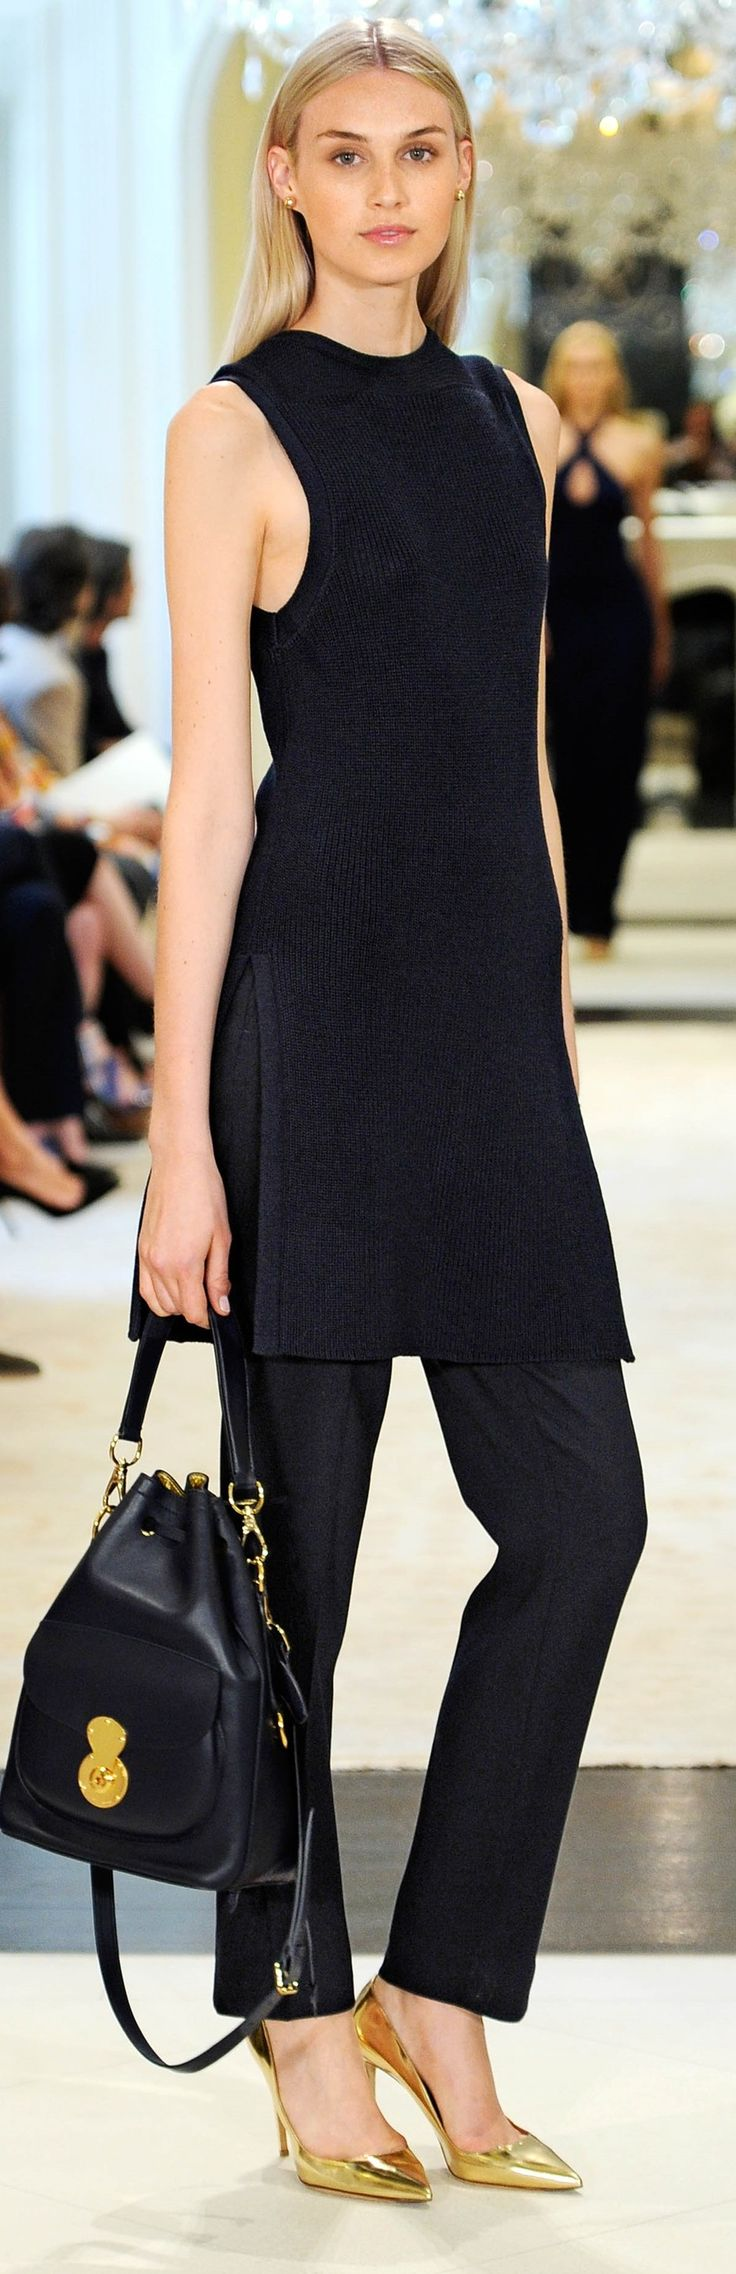 Ralph Lauren Resort 2015 / Pre-Spring 2015 love the long and monocromatic look